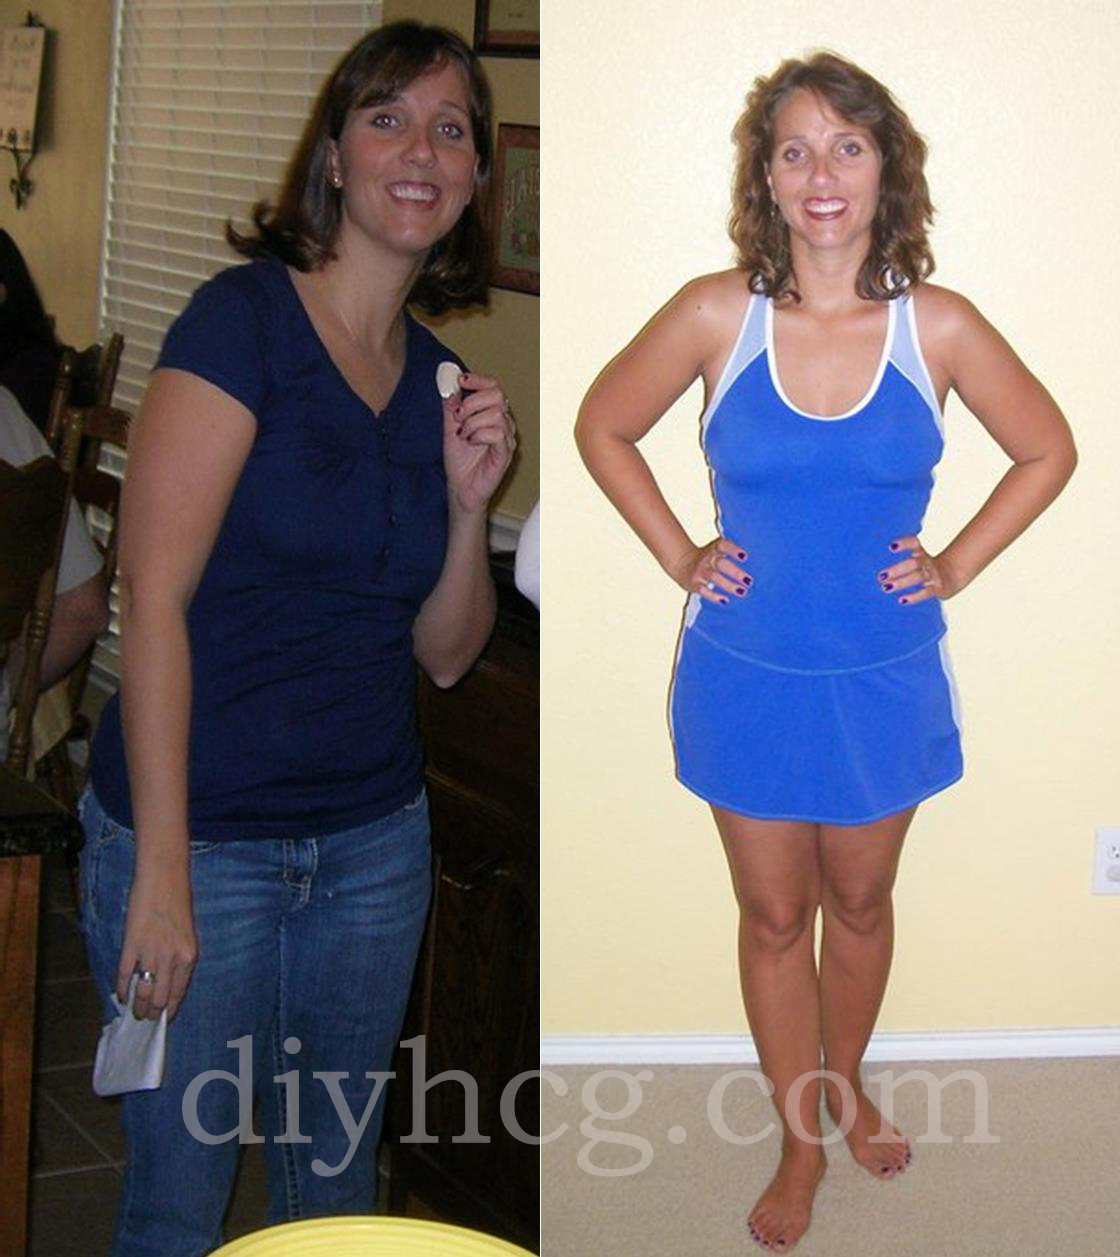 lifeone for weight loss